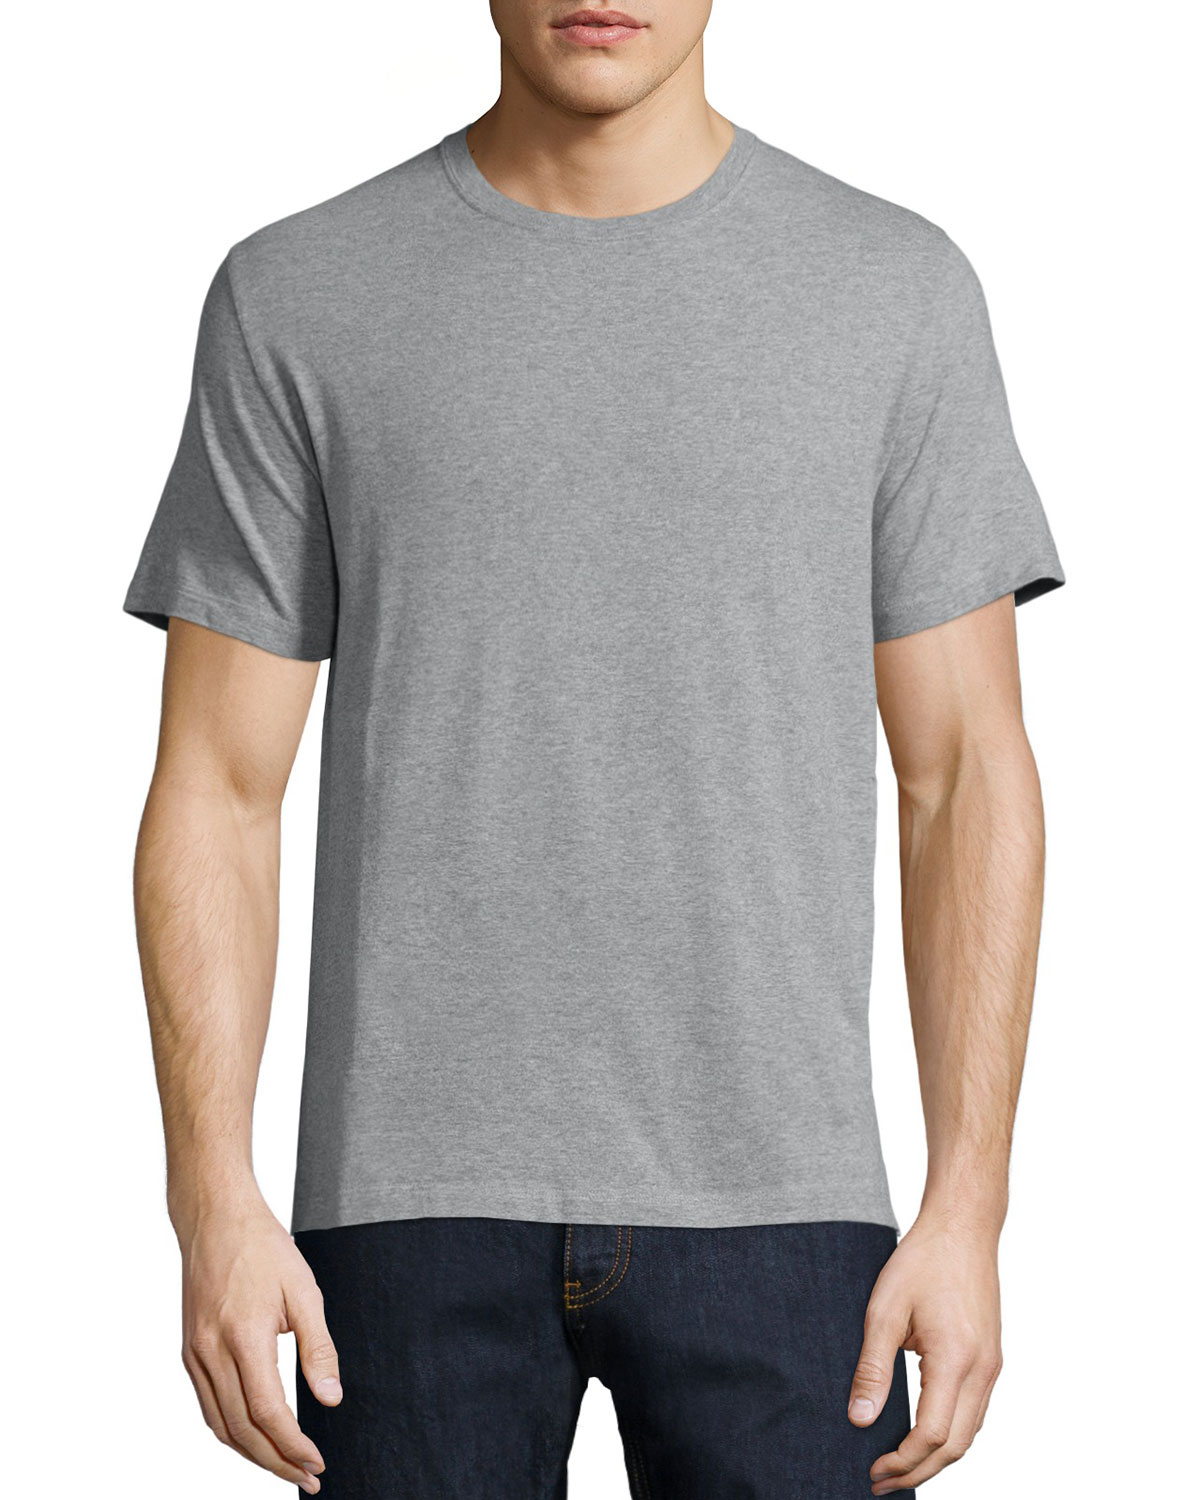 Basic Short-Sleeve T-Shirt with Back Stud, Gray